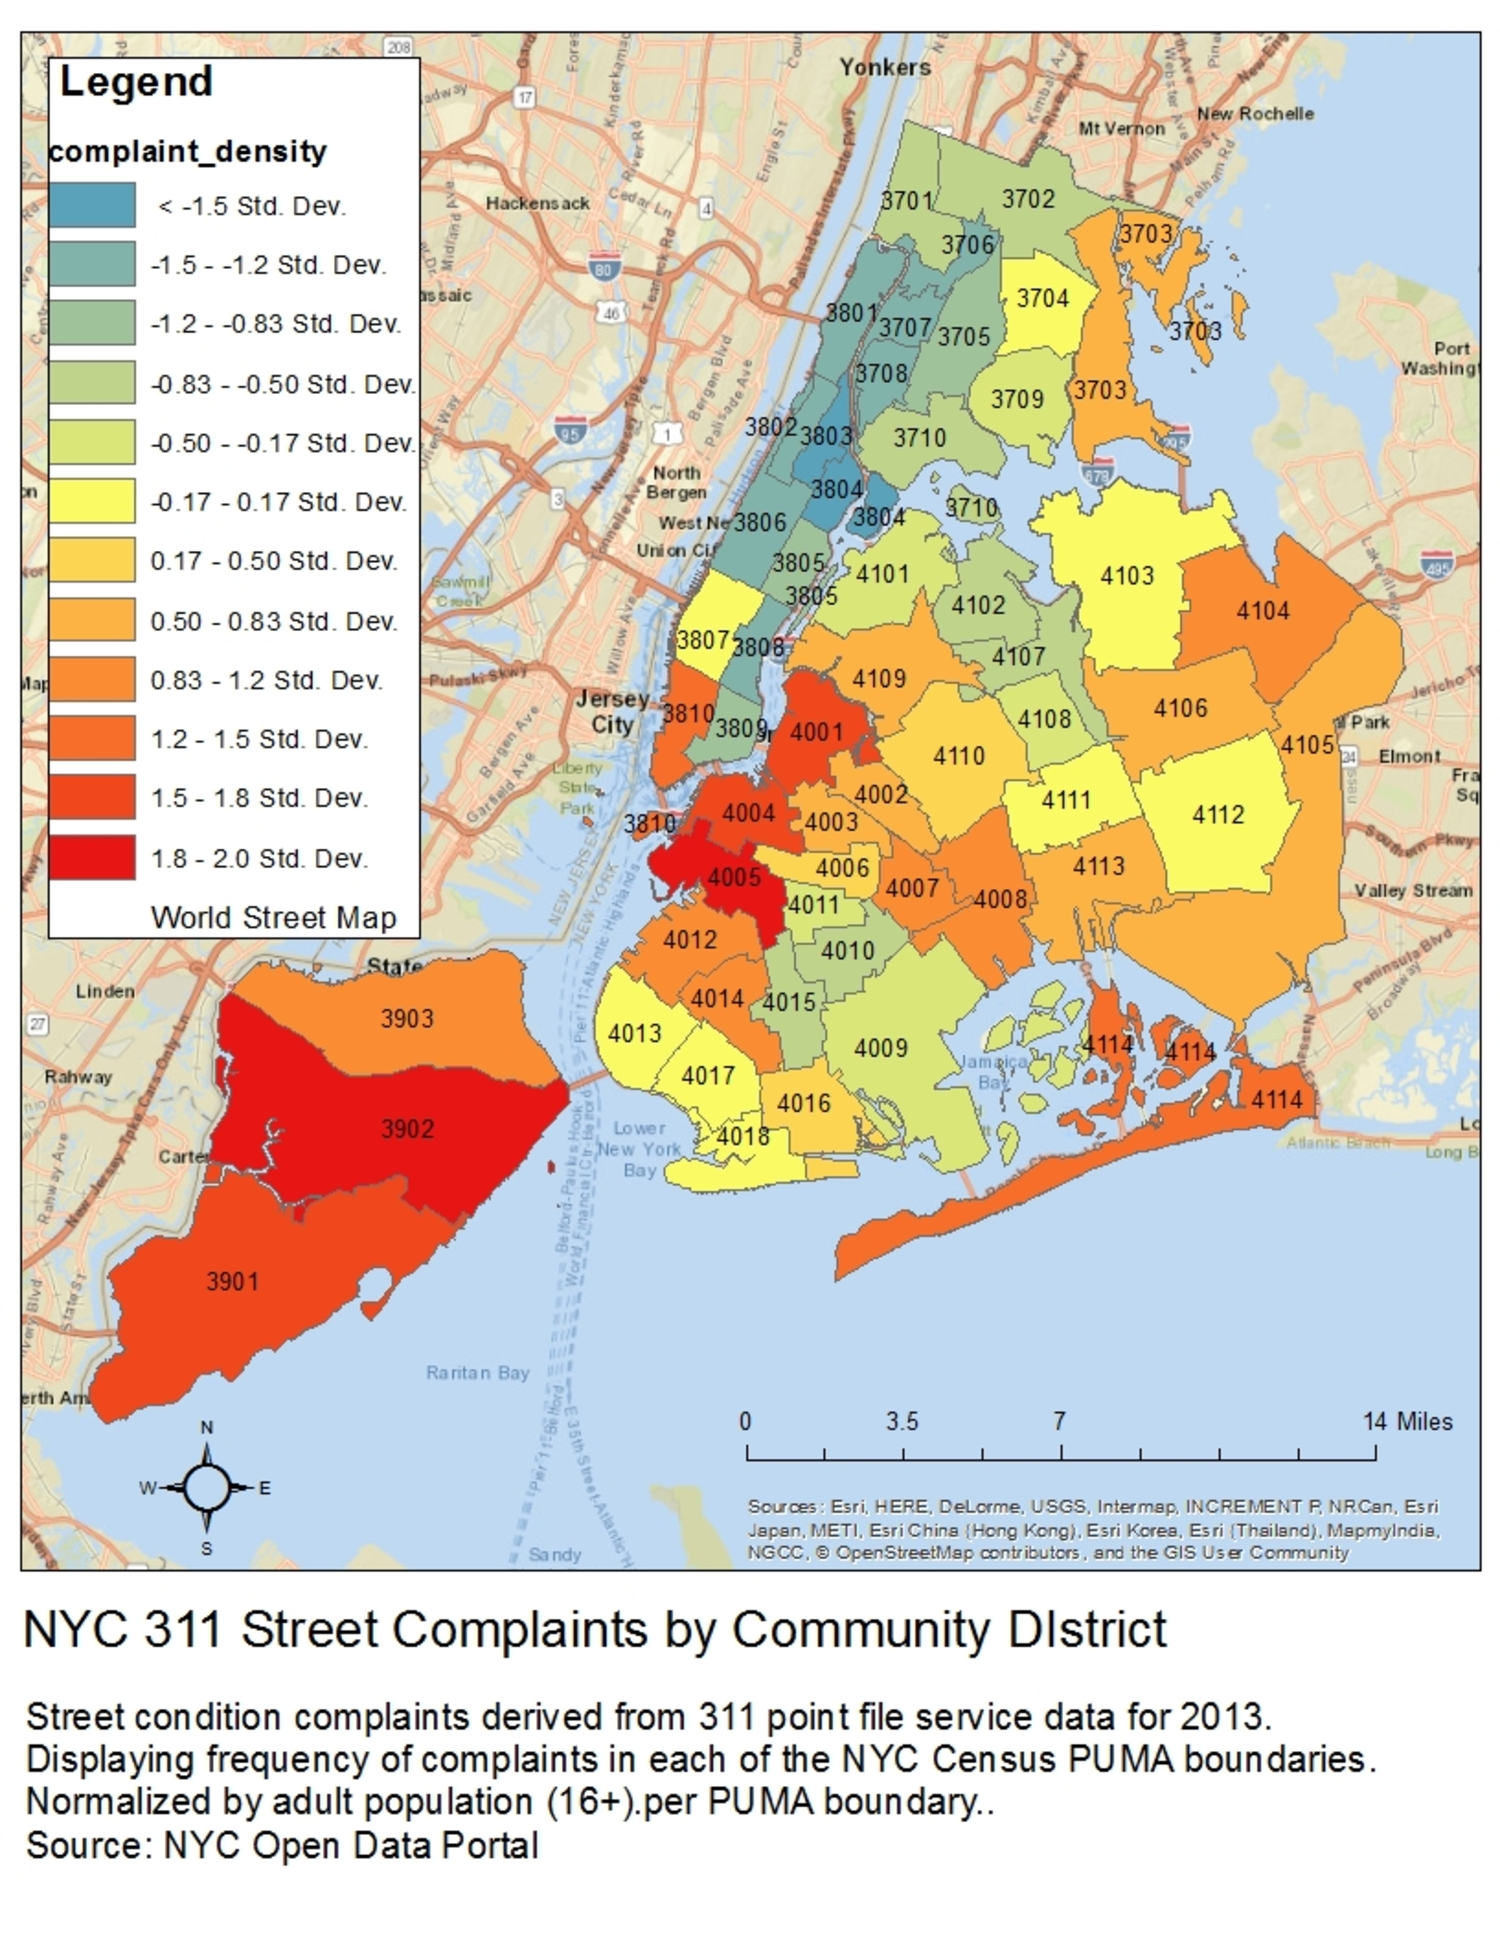 Map Heat Map Of New York City S 311 Street Complaints By Community